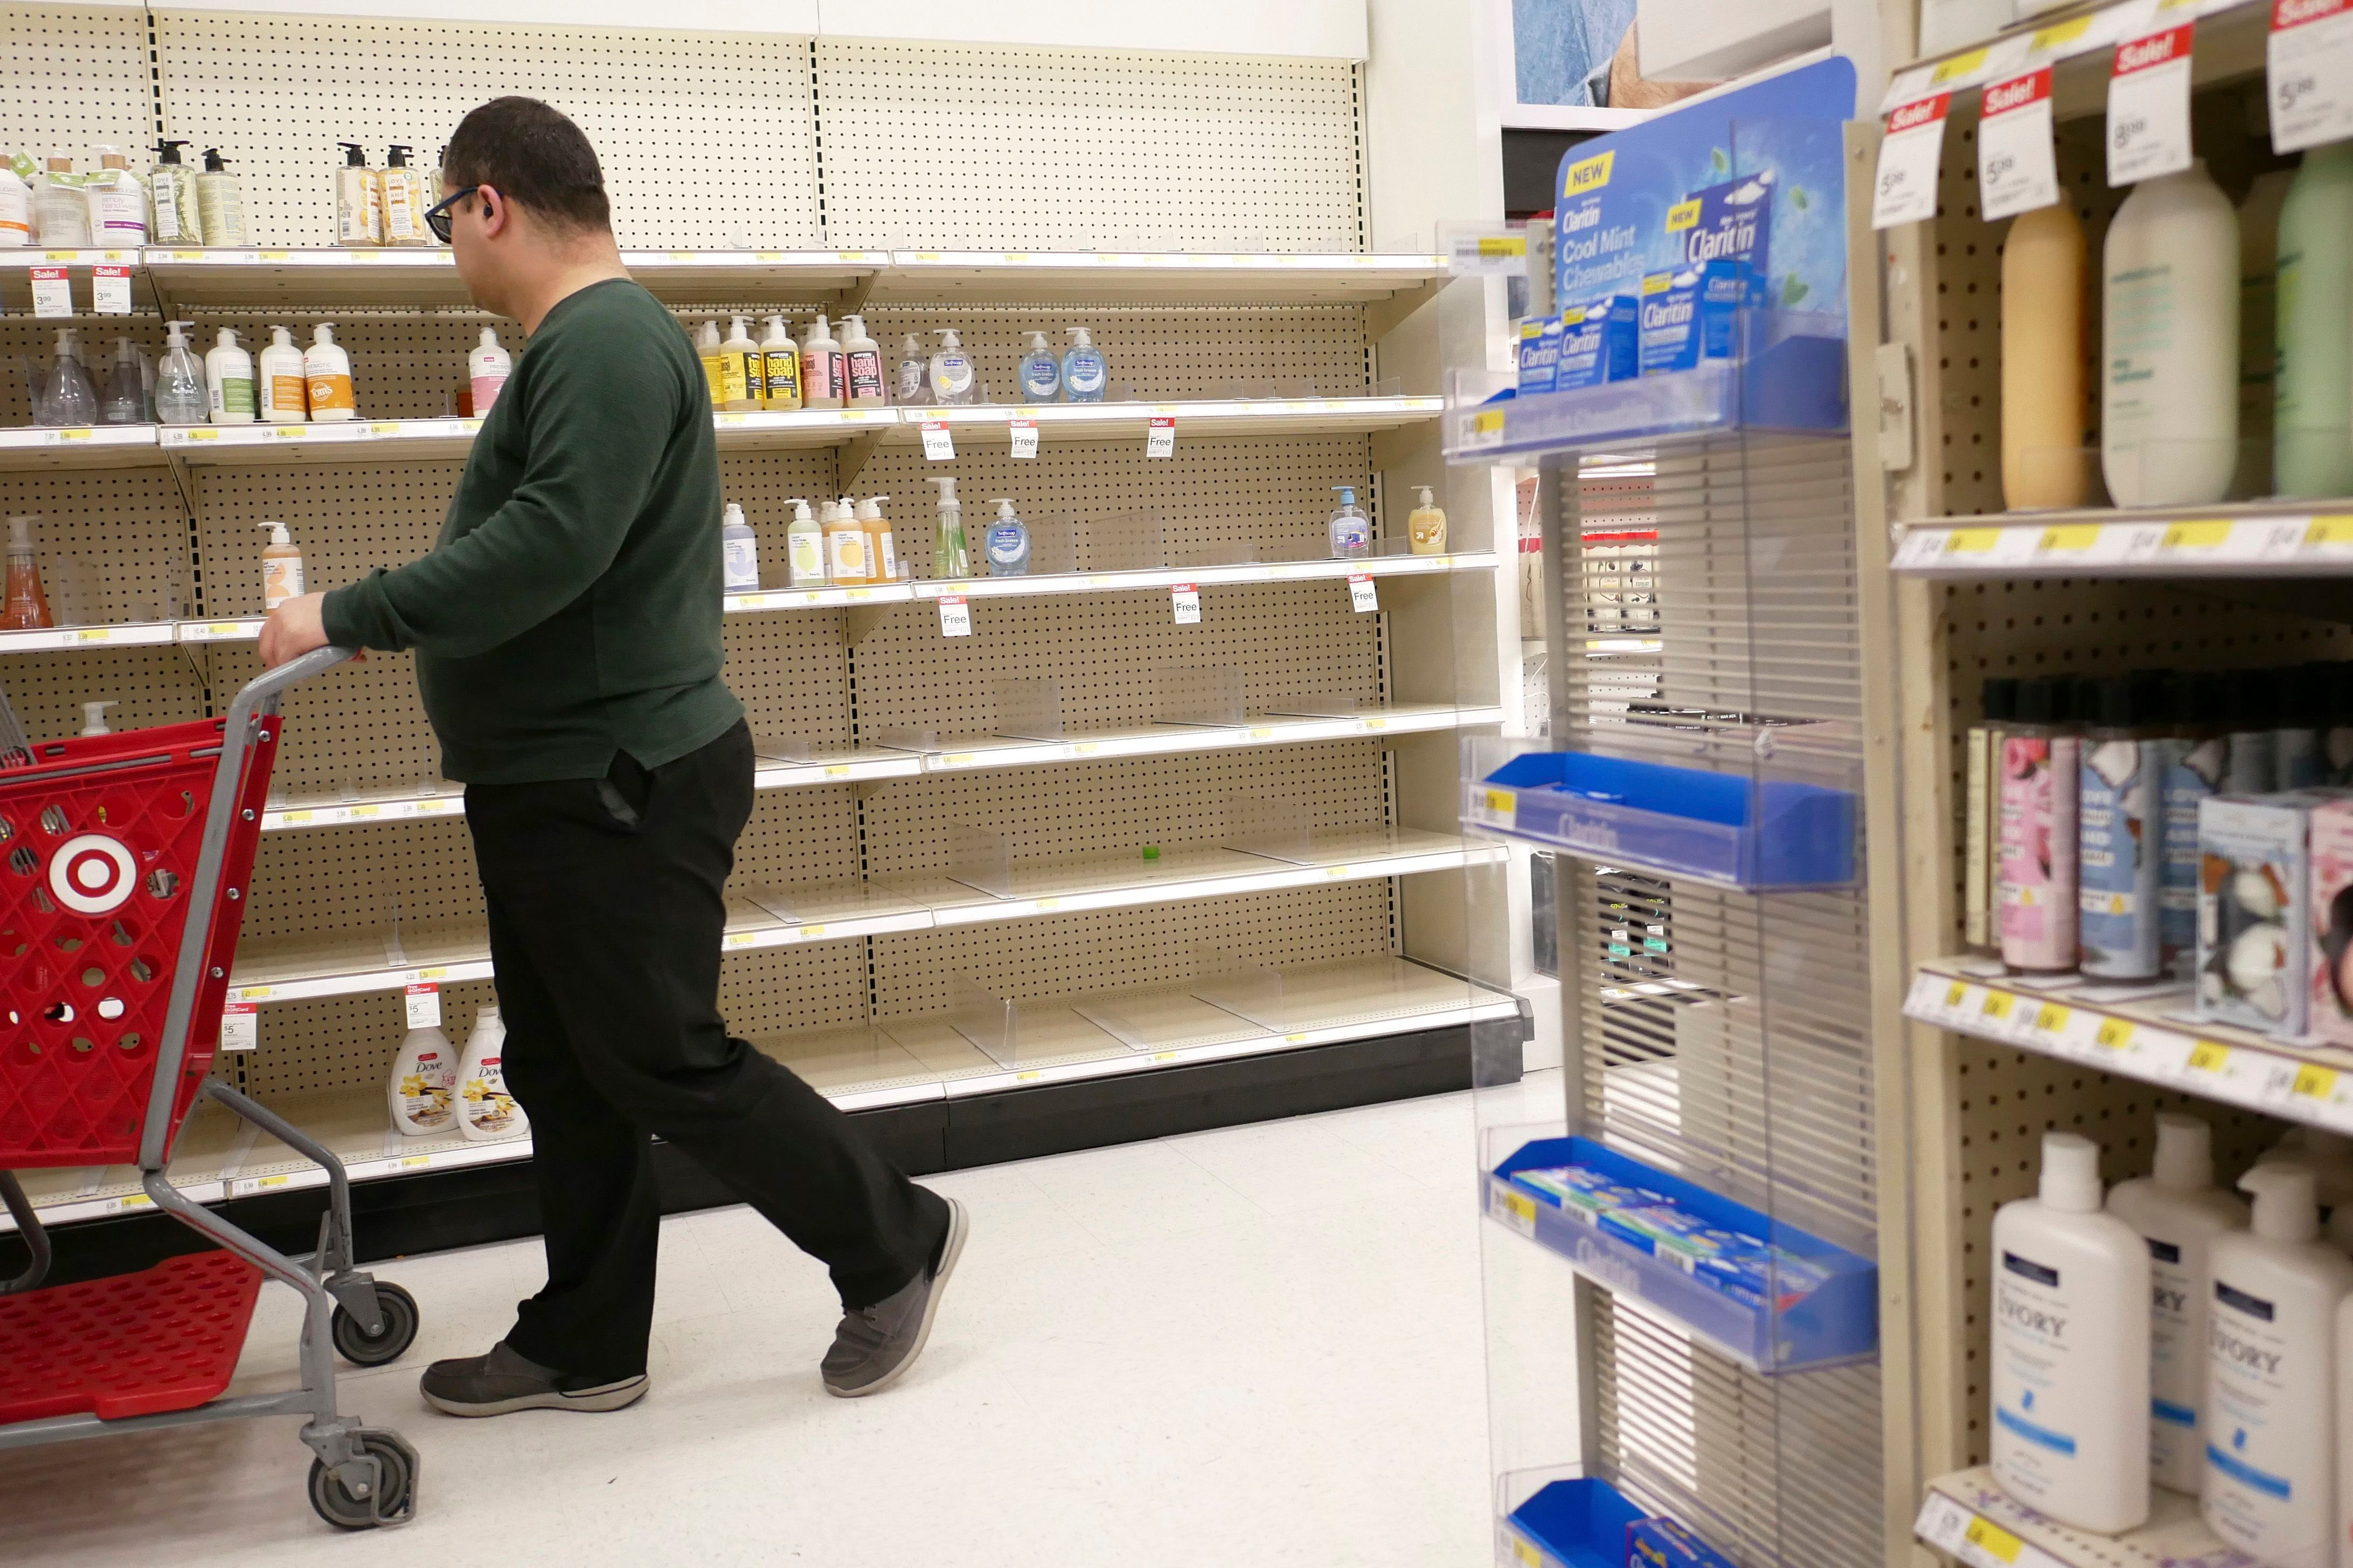 Shelves that held hand sanitizer and hand soap are mostly empty at a Target in Jersey City, N.JVirus Outbreak New Jersey, Jersey City, USA - 03 Mar 2020